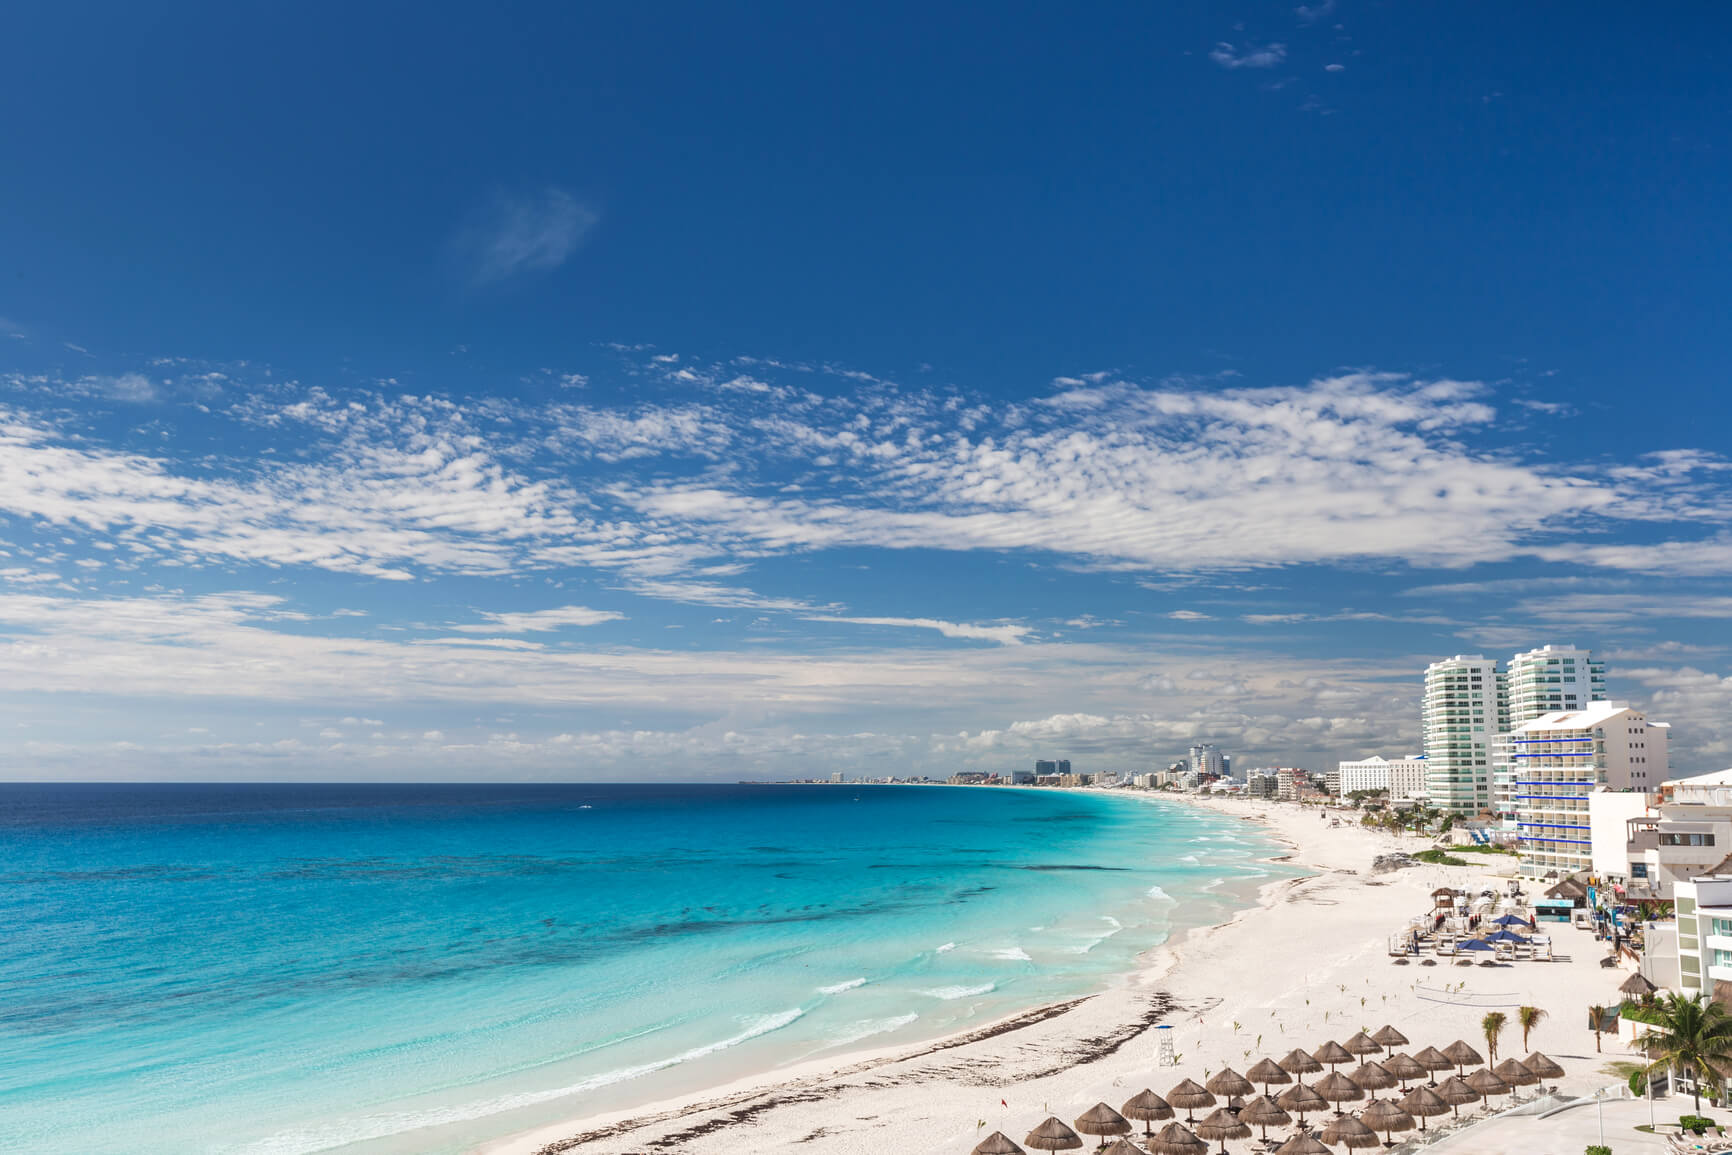 Non-stop from Houston, Texas to Cancun, Mexico for only $160 roundtrip